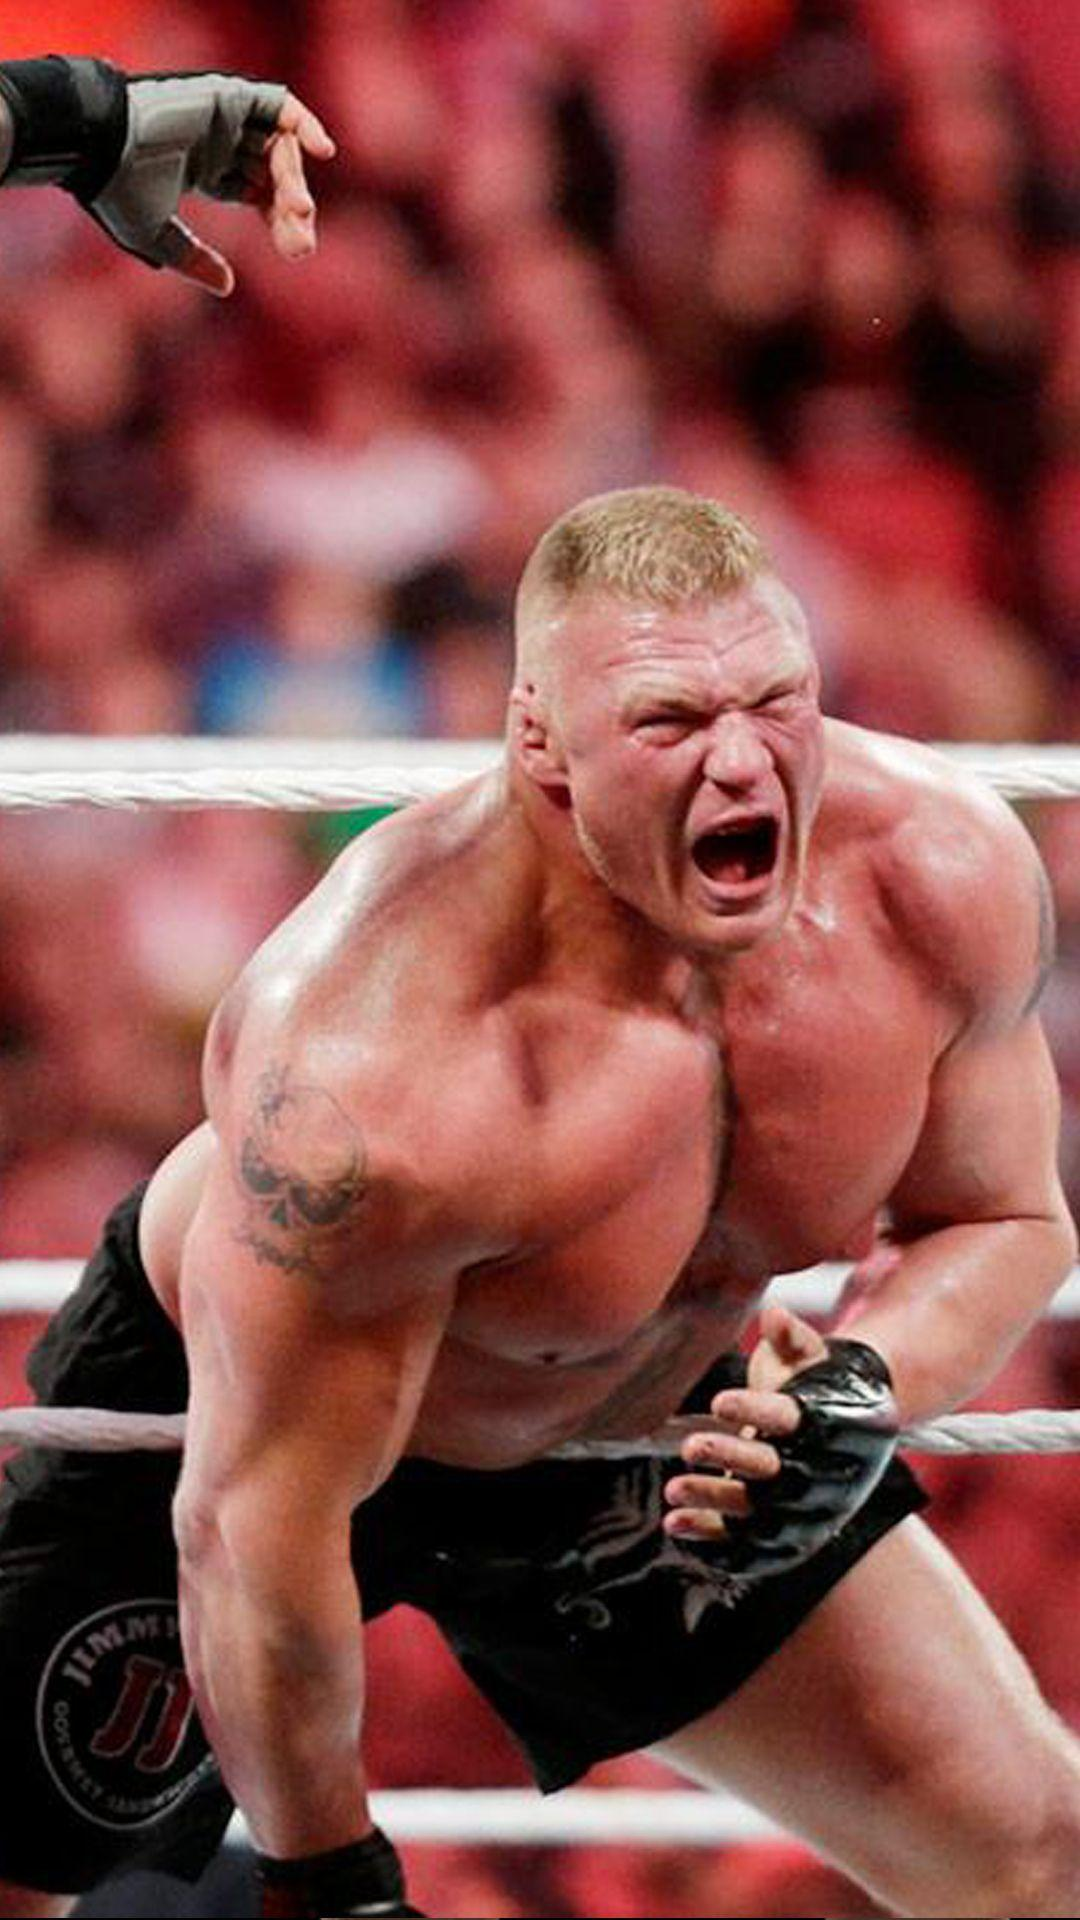 Brock Lesner HD Android Wallpapers - Wallpaper Cave